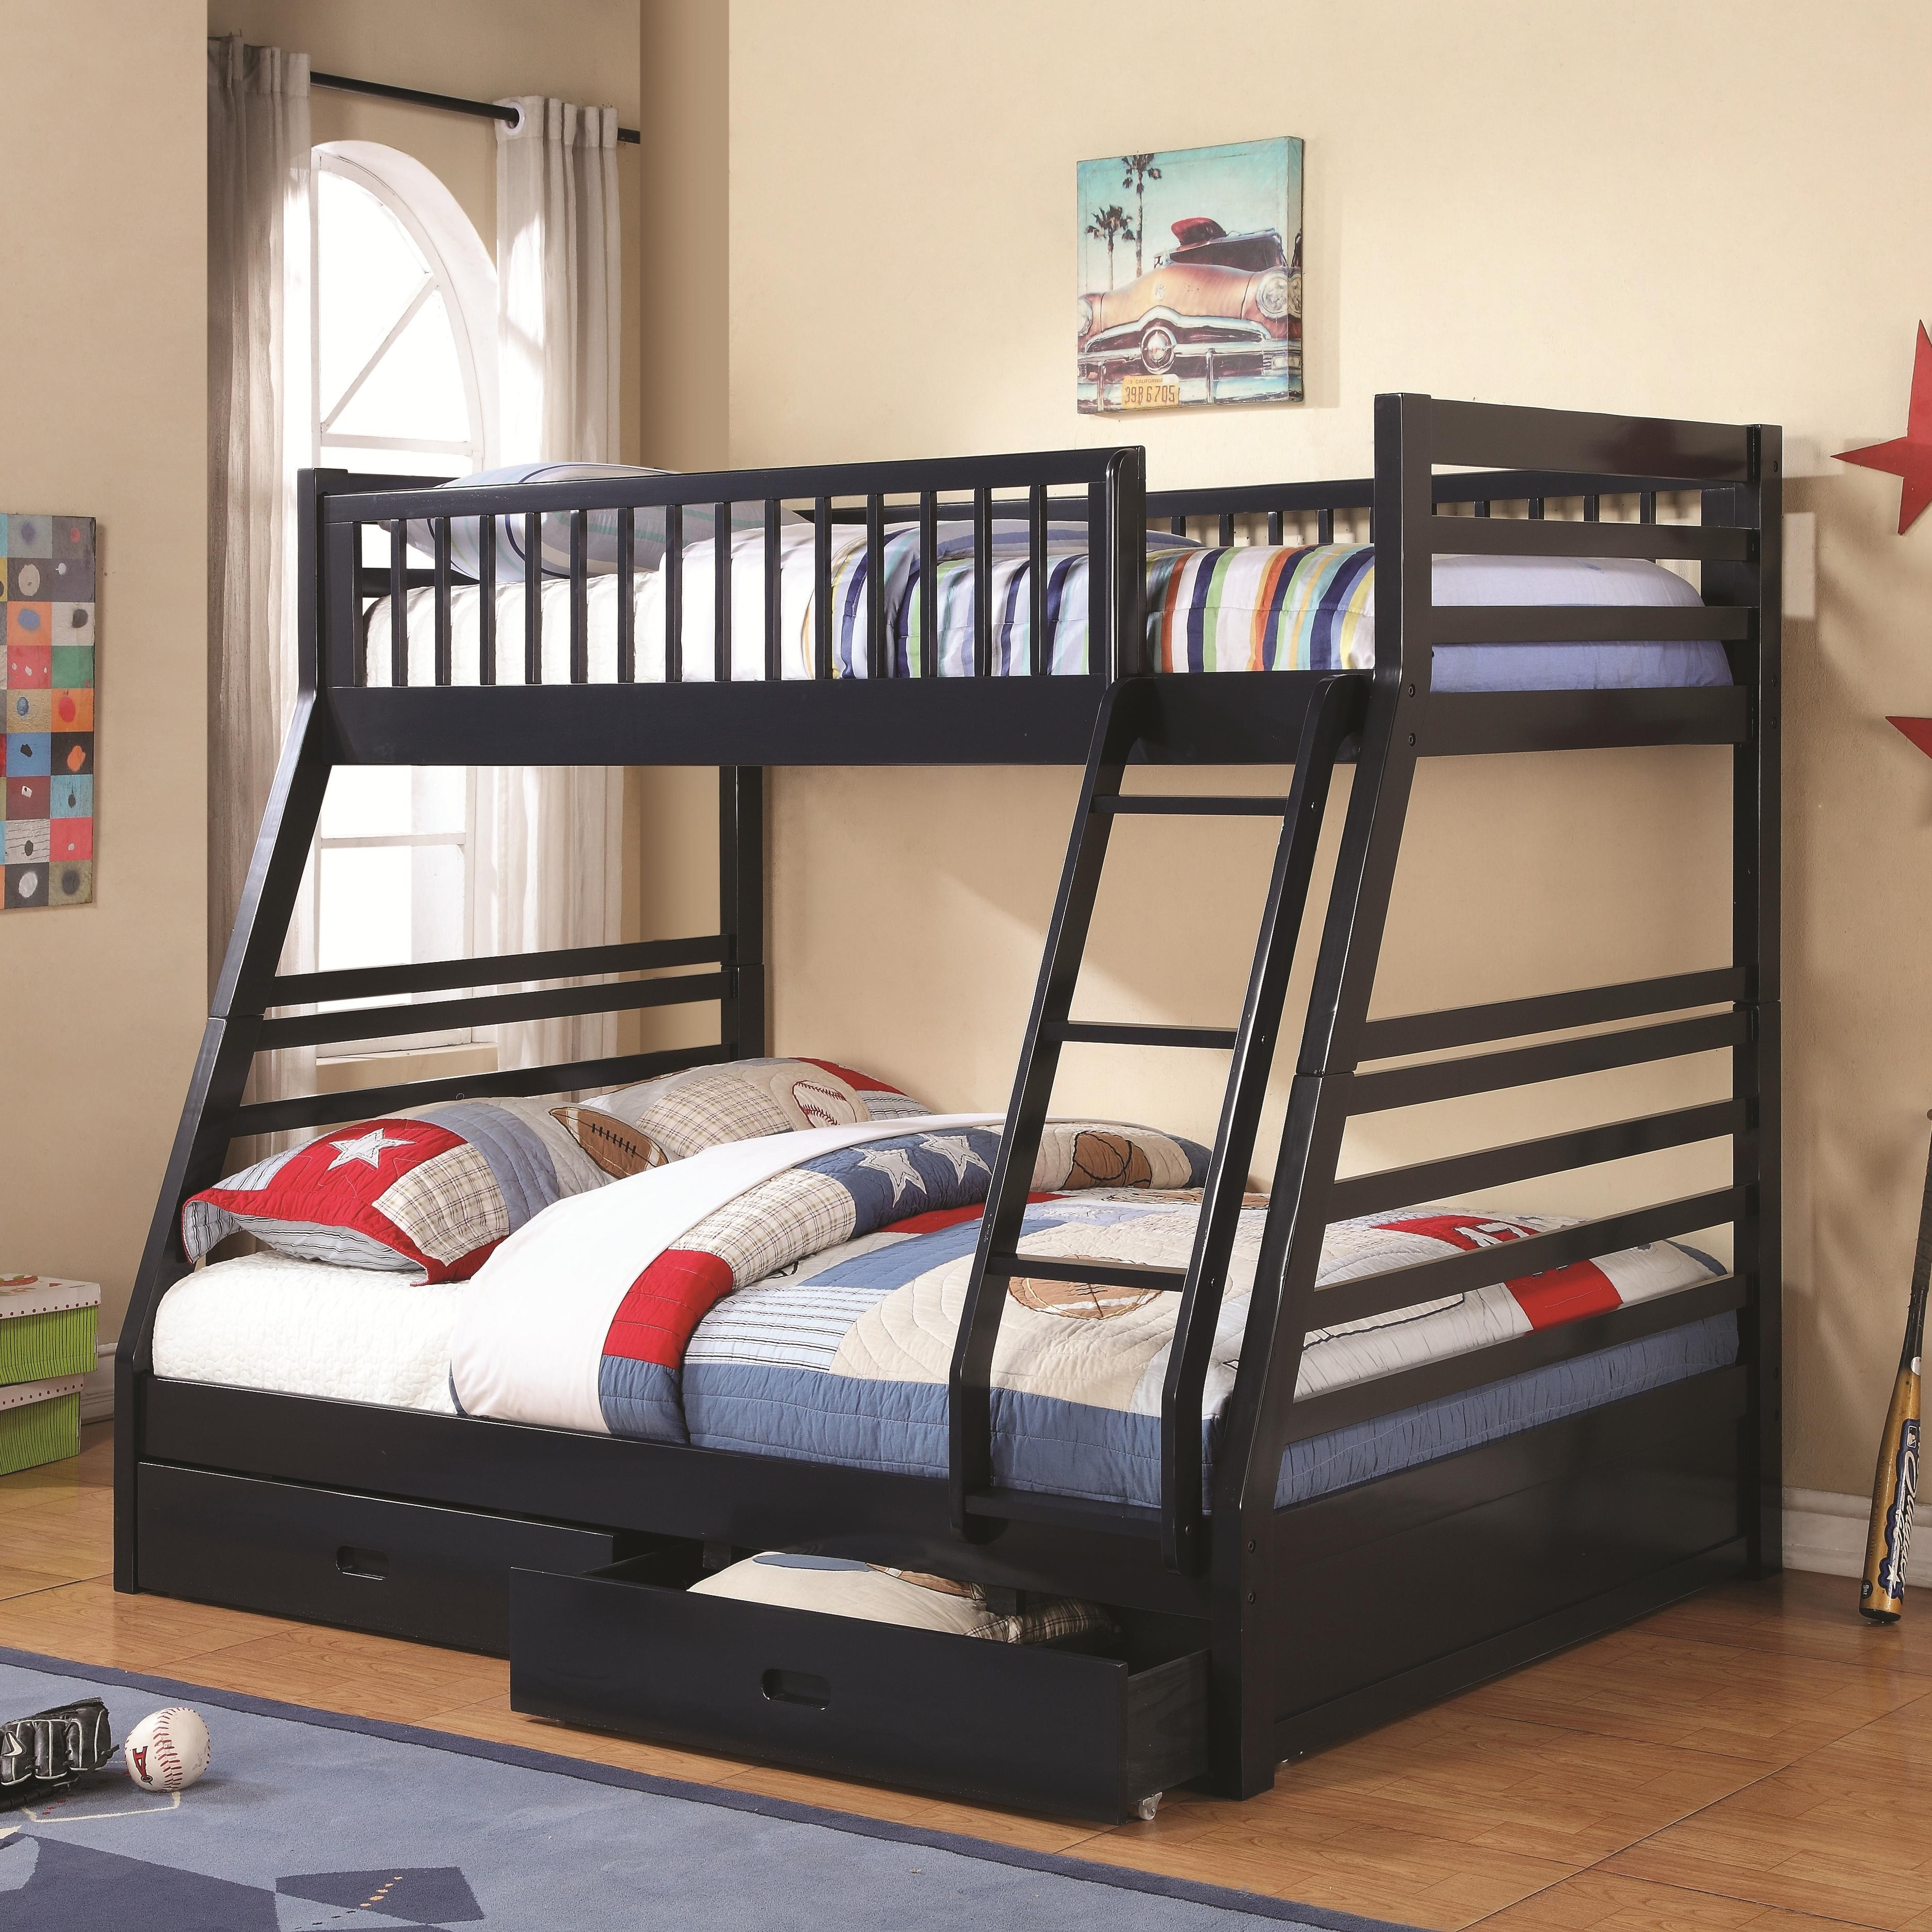 Cooper Bunk Bed Series Navy Blue Bunk Bed From Coaster